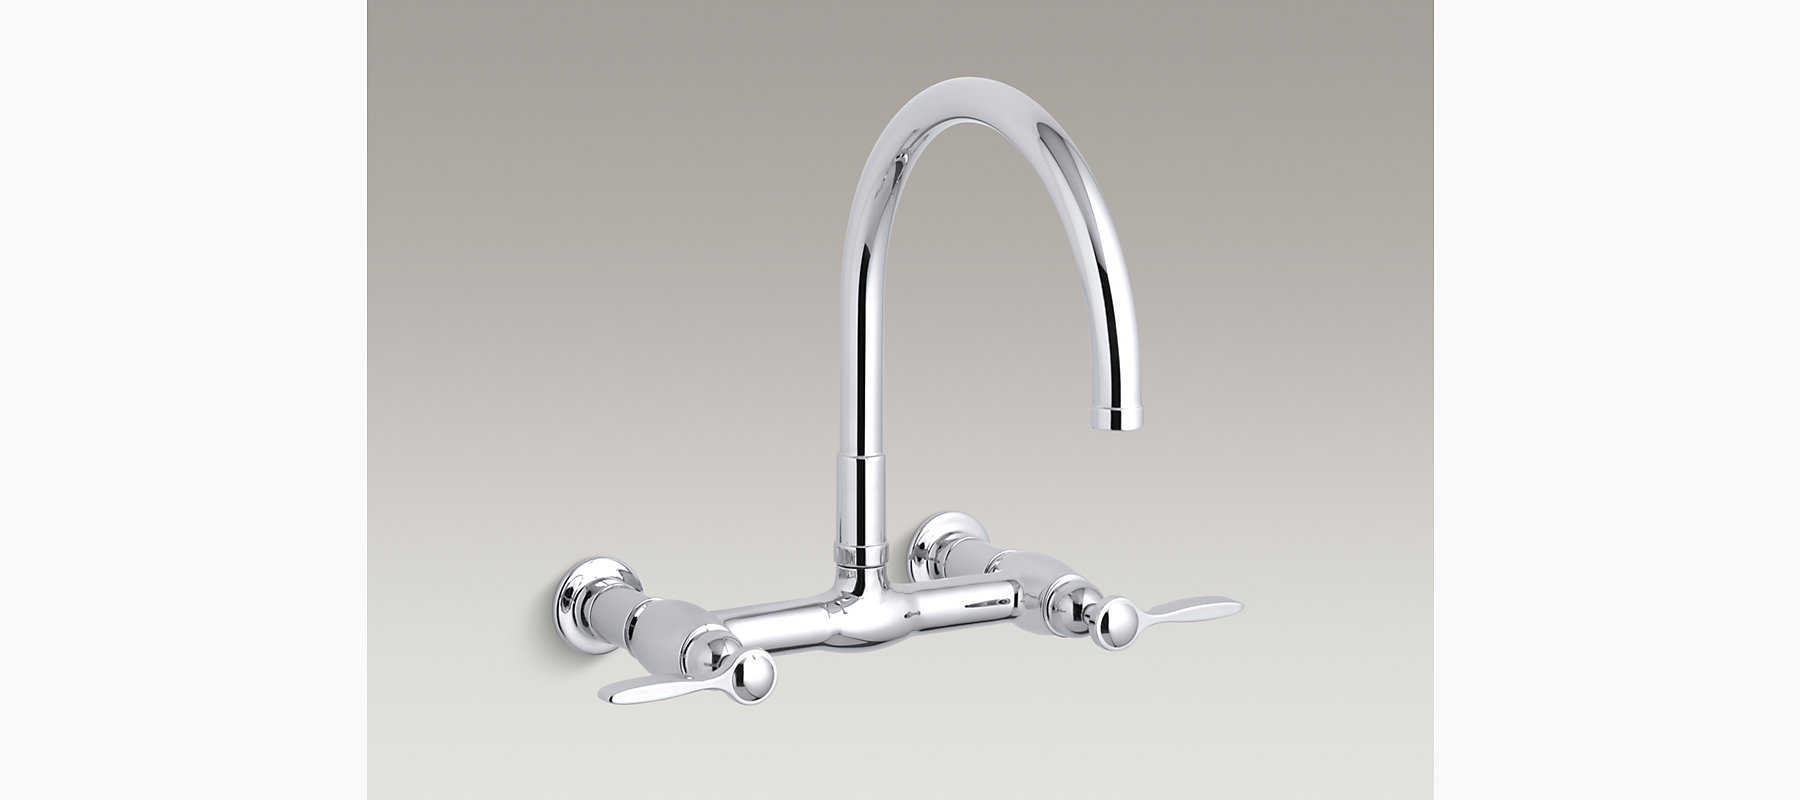 Parq Wall-Mount Bridge Kitchen Sink Faucet | K-6132-4 | KOHLER